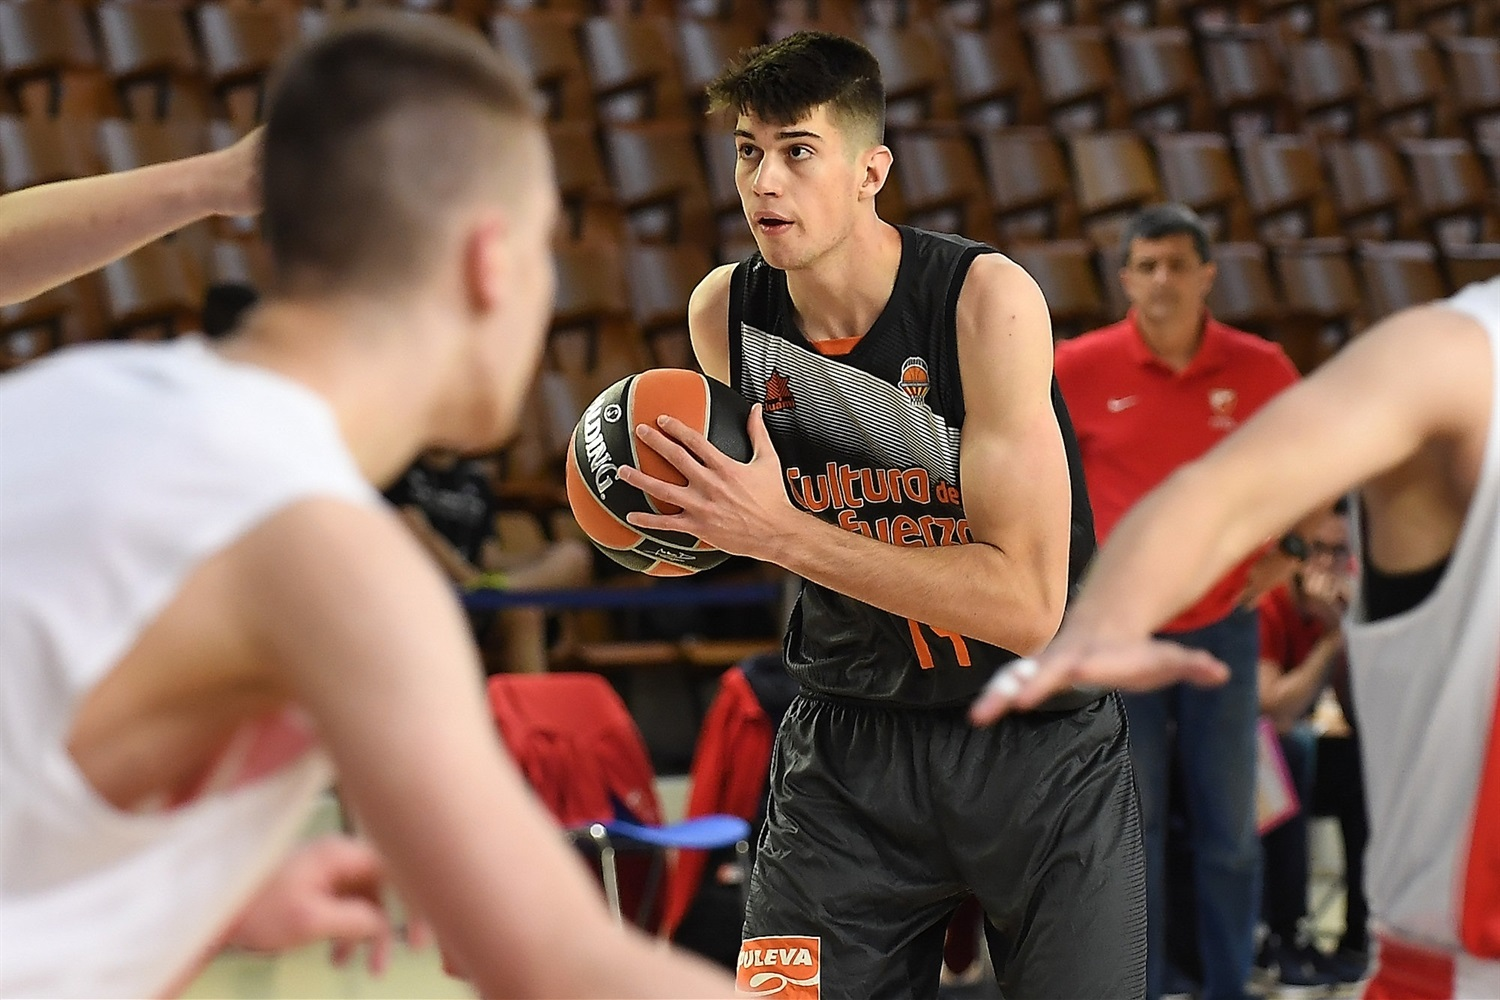 Alonso Faure - U18 Valencia Basket - ANGT Final Four Vitoria-Gasteiz 2019 - JT18